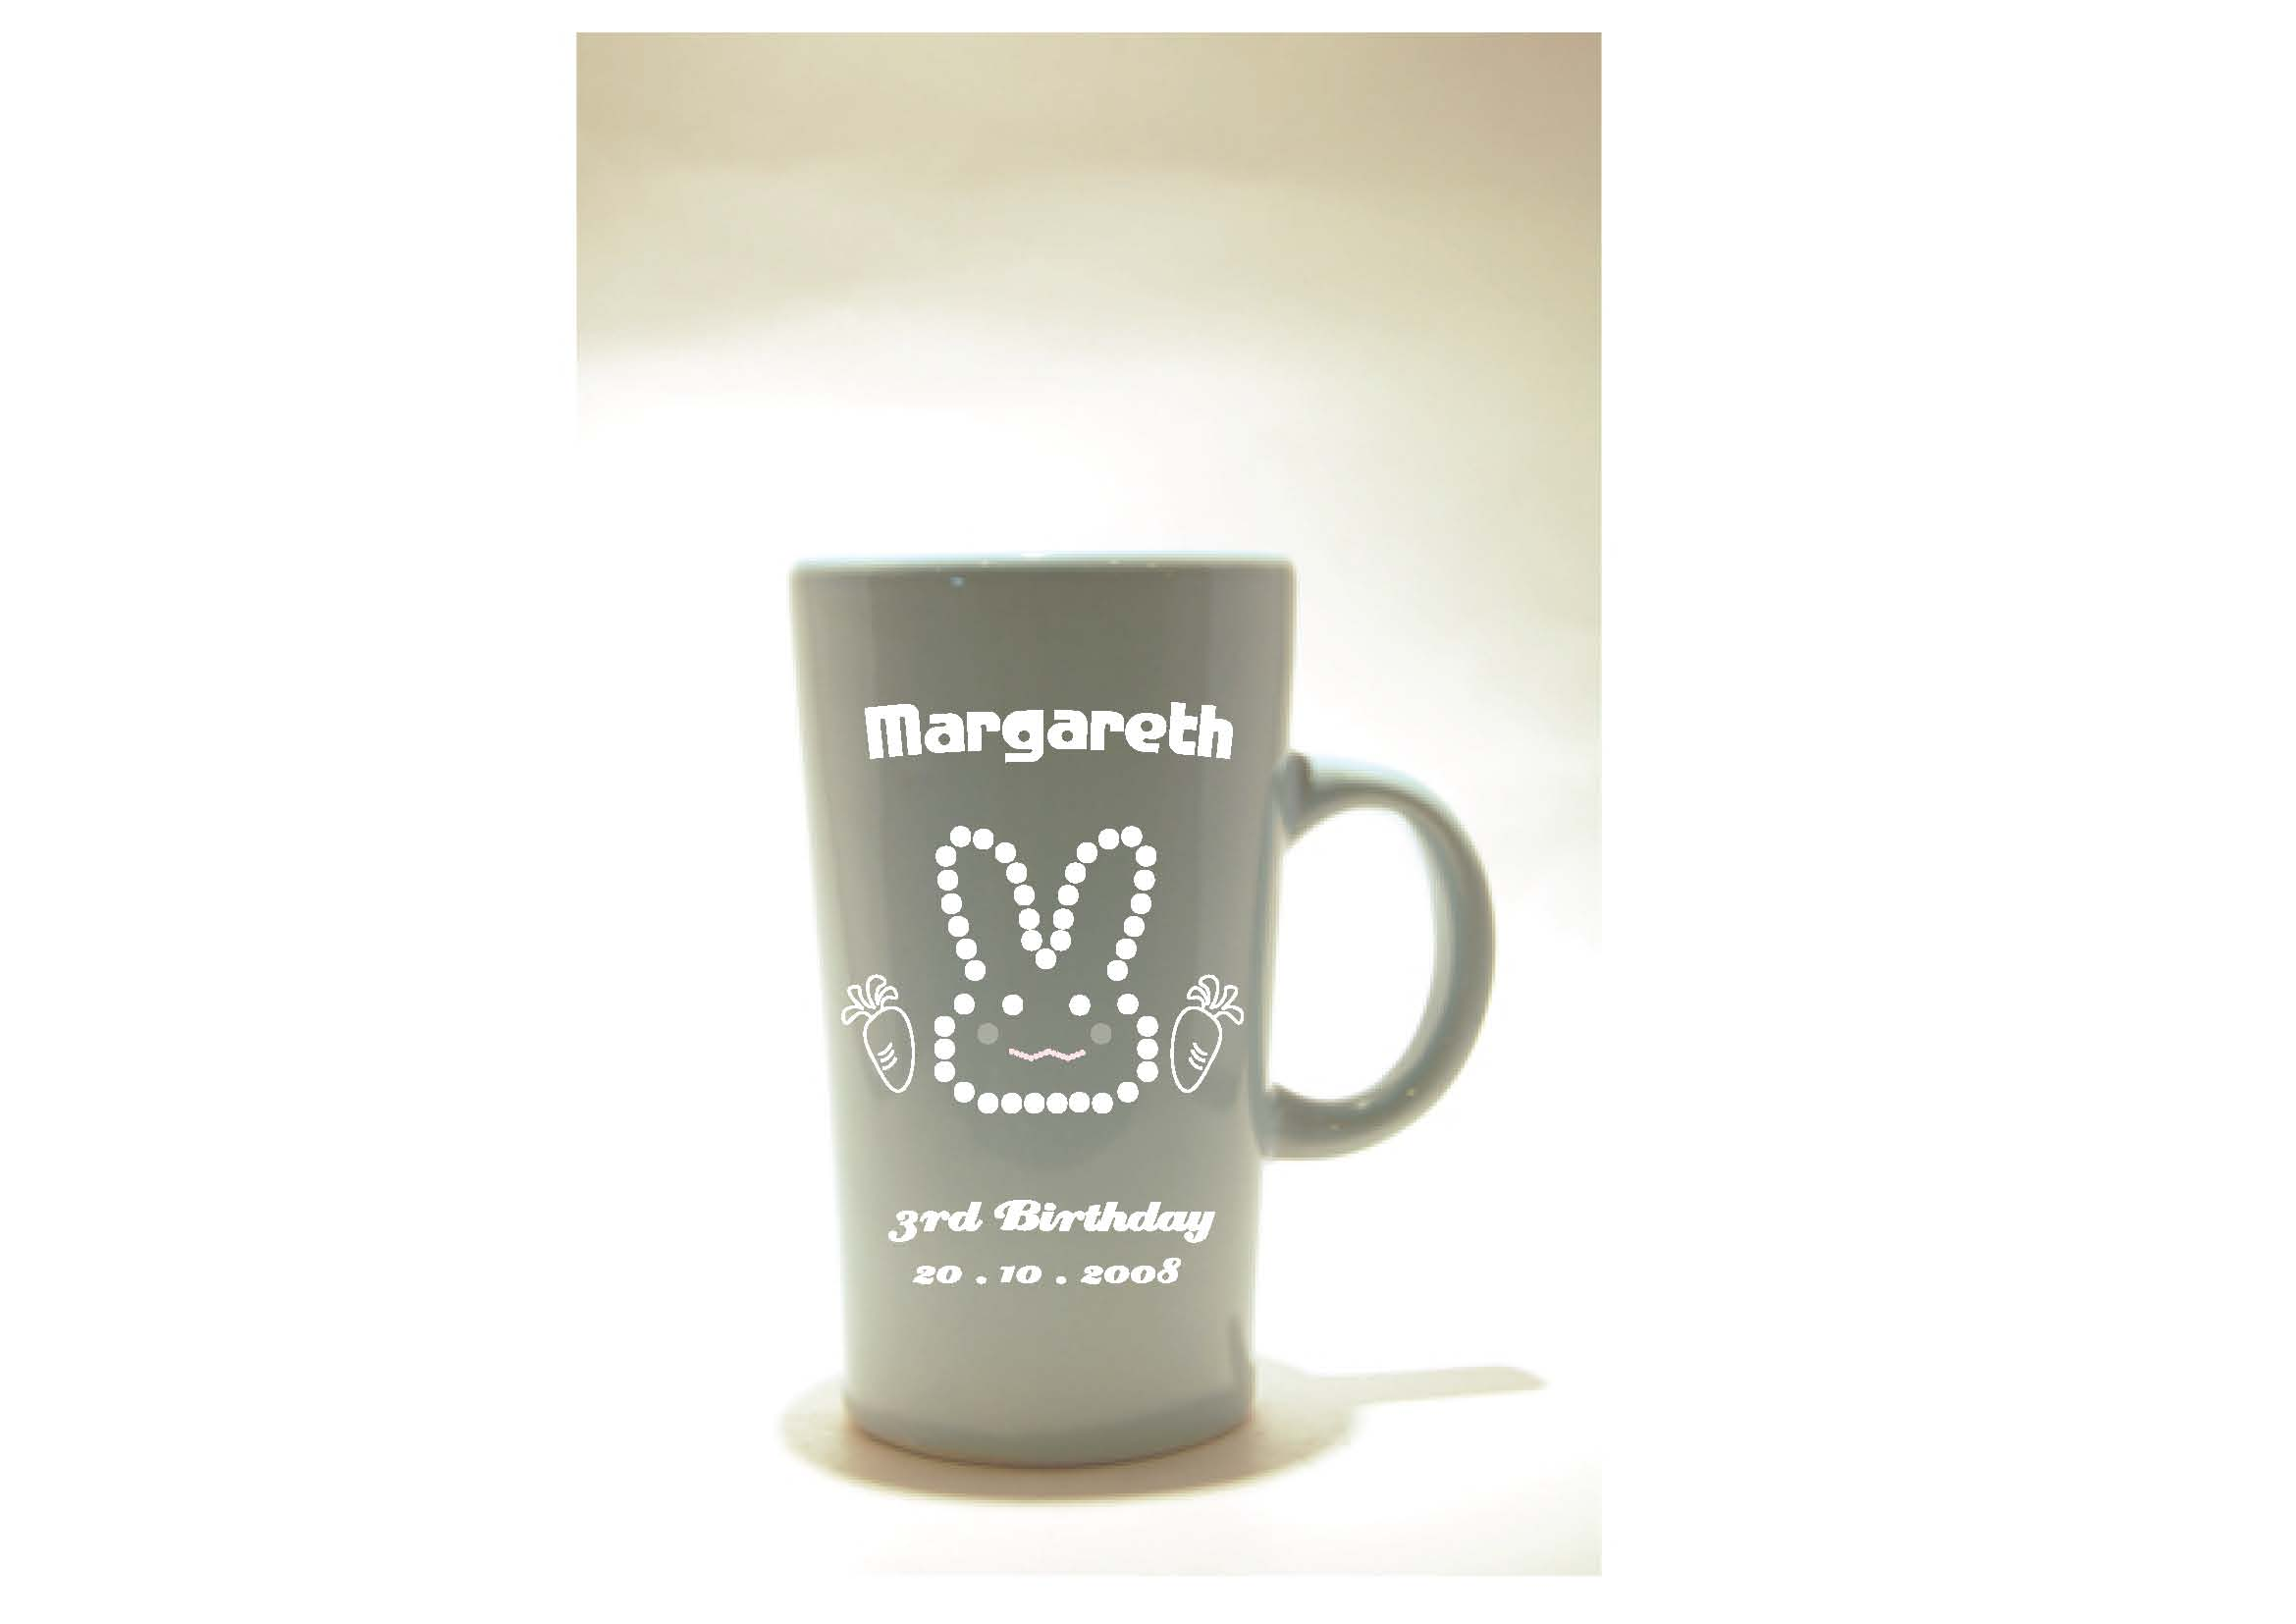 Thin Mug,marco mario souvenir, wedding souvenirs, souvenir pernikahan surabaya indonesia, wedding favors, souvenir ideas, royal wedding souvenirs